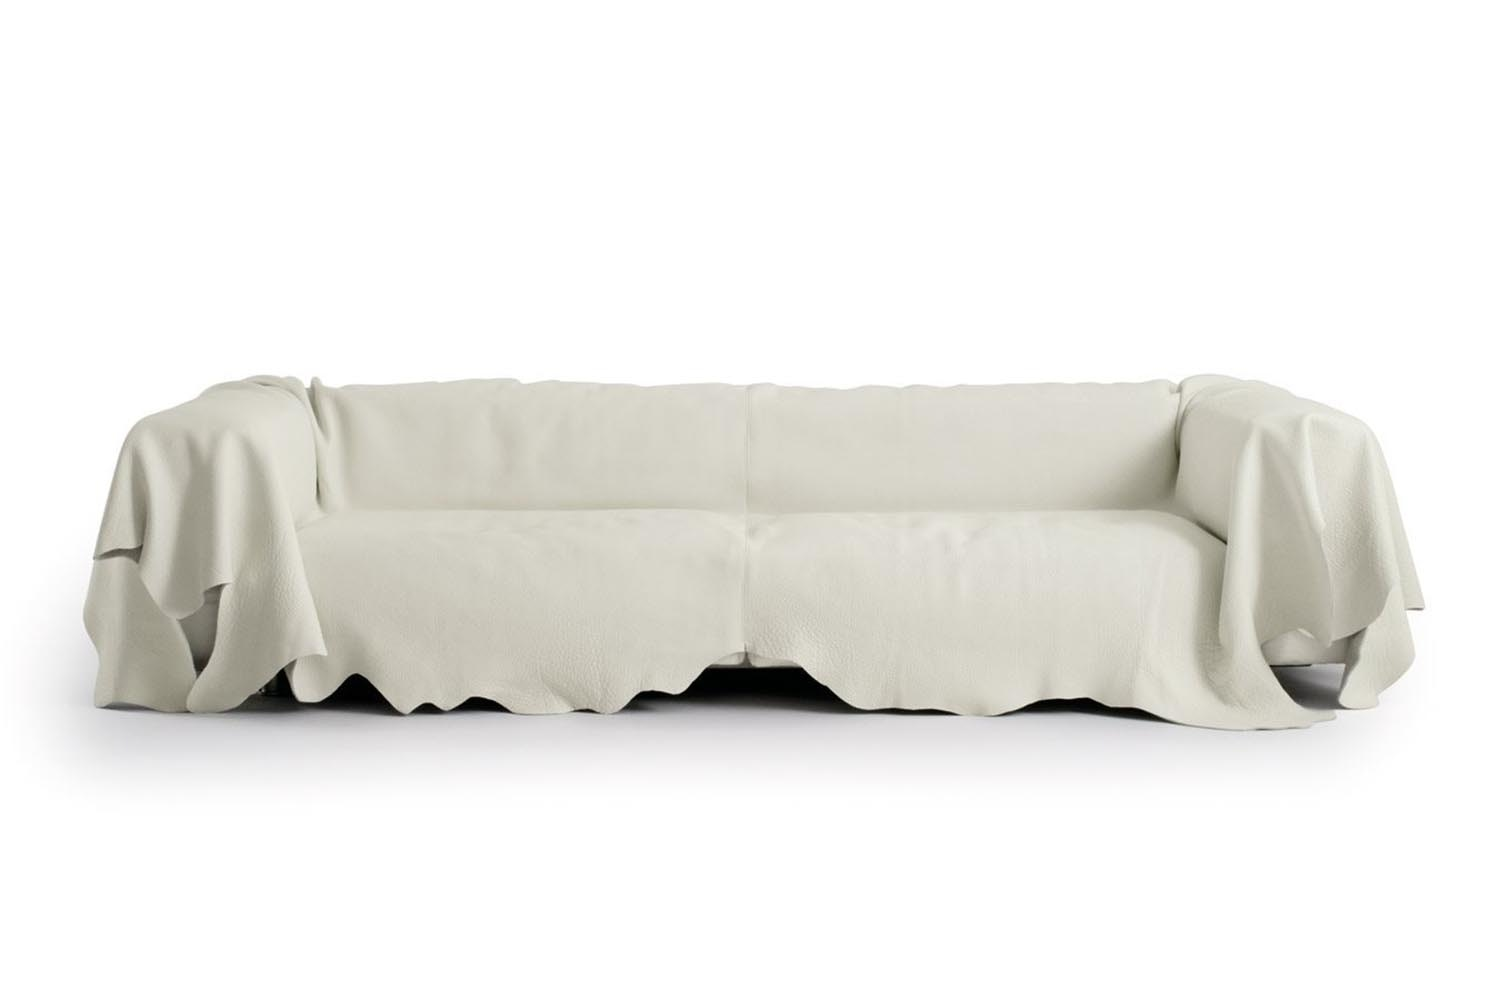 Sofa' Gran Khan by Francesco Binfare for Edra